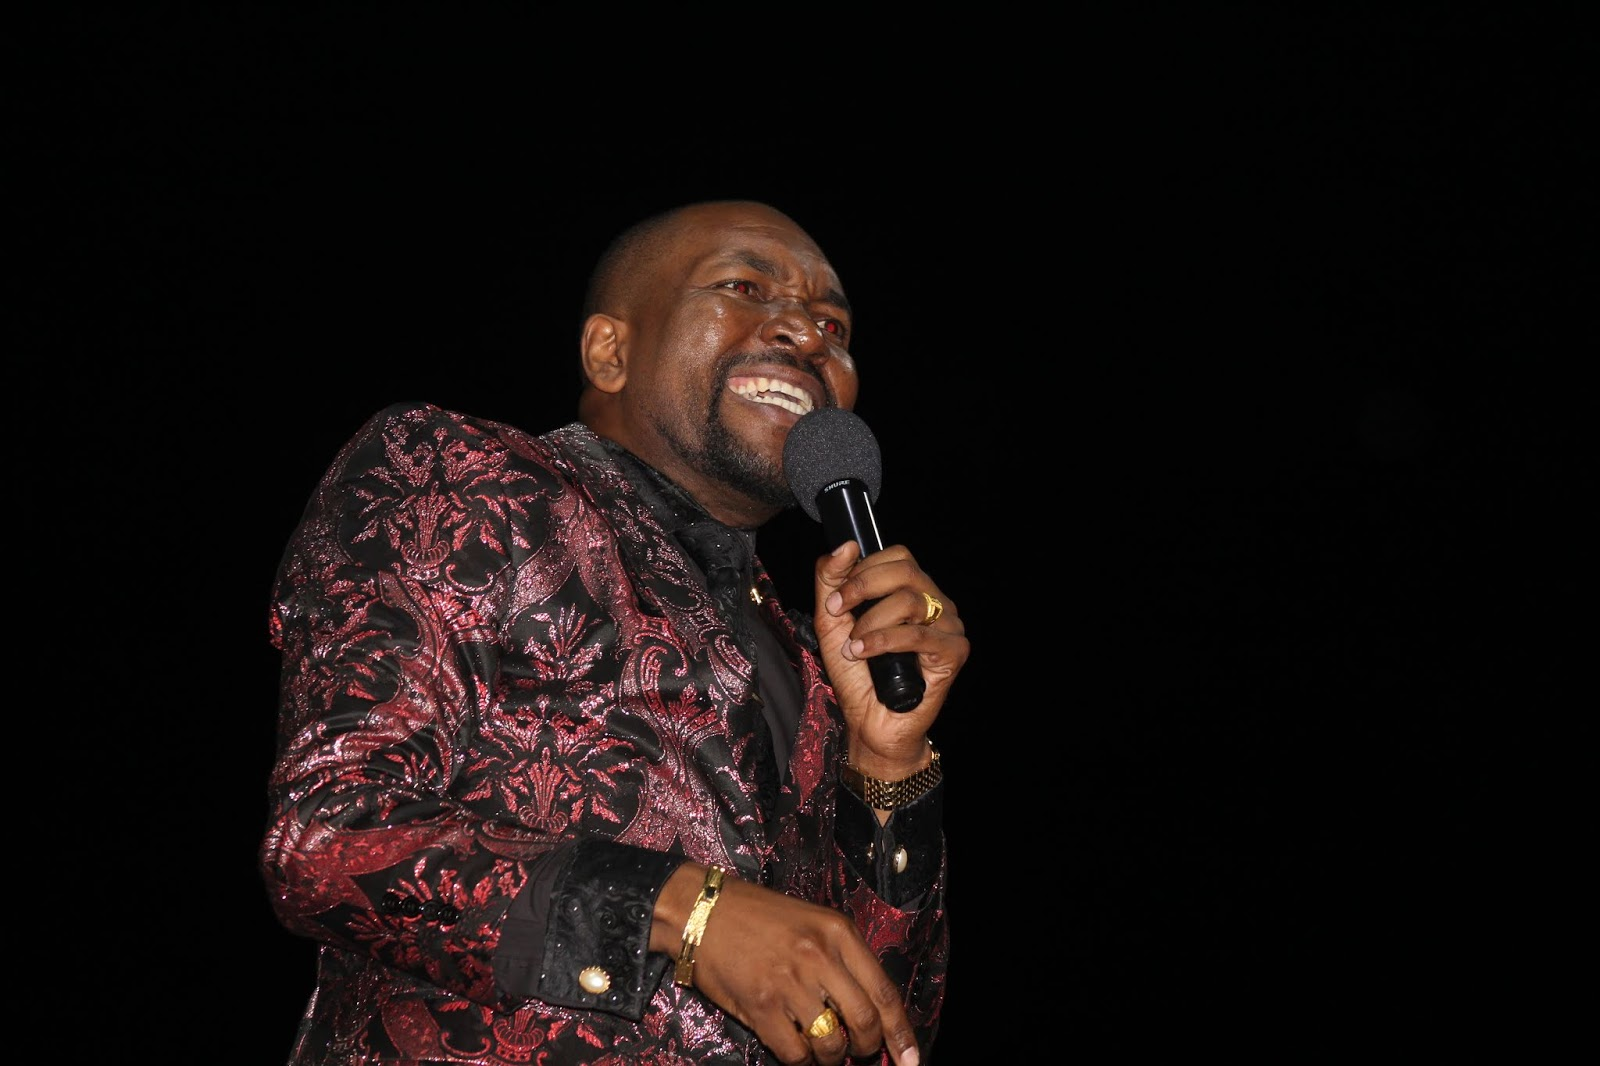 Prophet Blessing Chiza Preaches On 'Demonic Limits To Being A Kingdom General' At Tiyambuke 2018